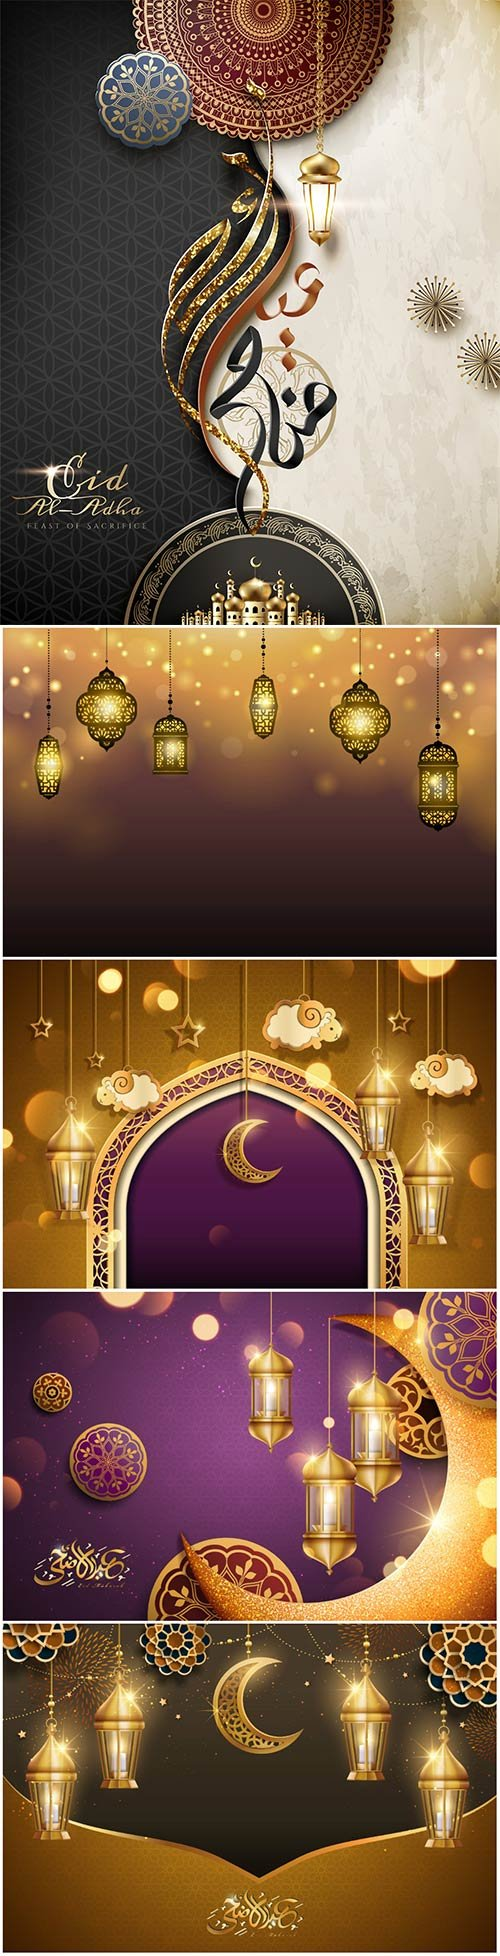 Eid al adha greeting vector design,  golden crescent with floral pattern